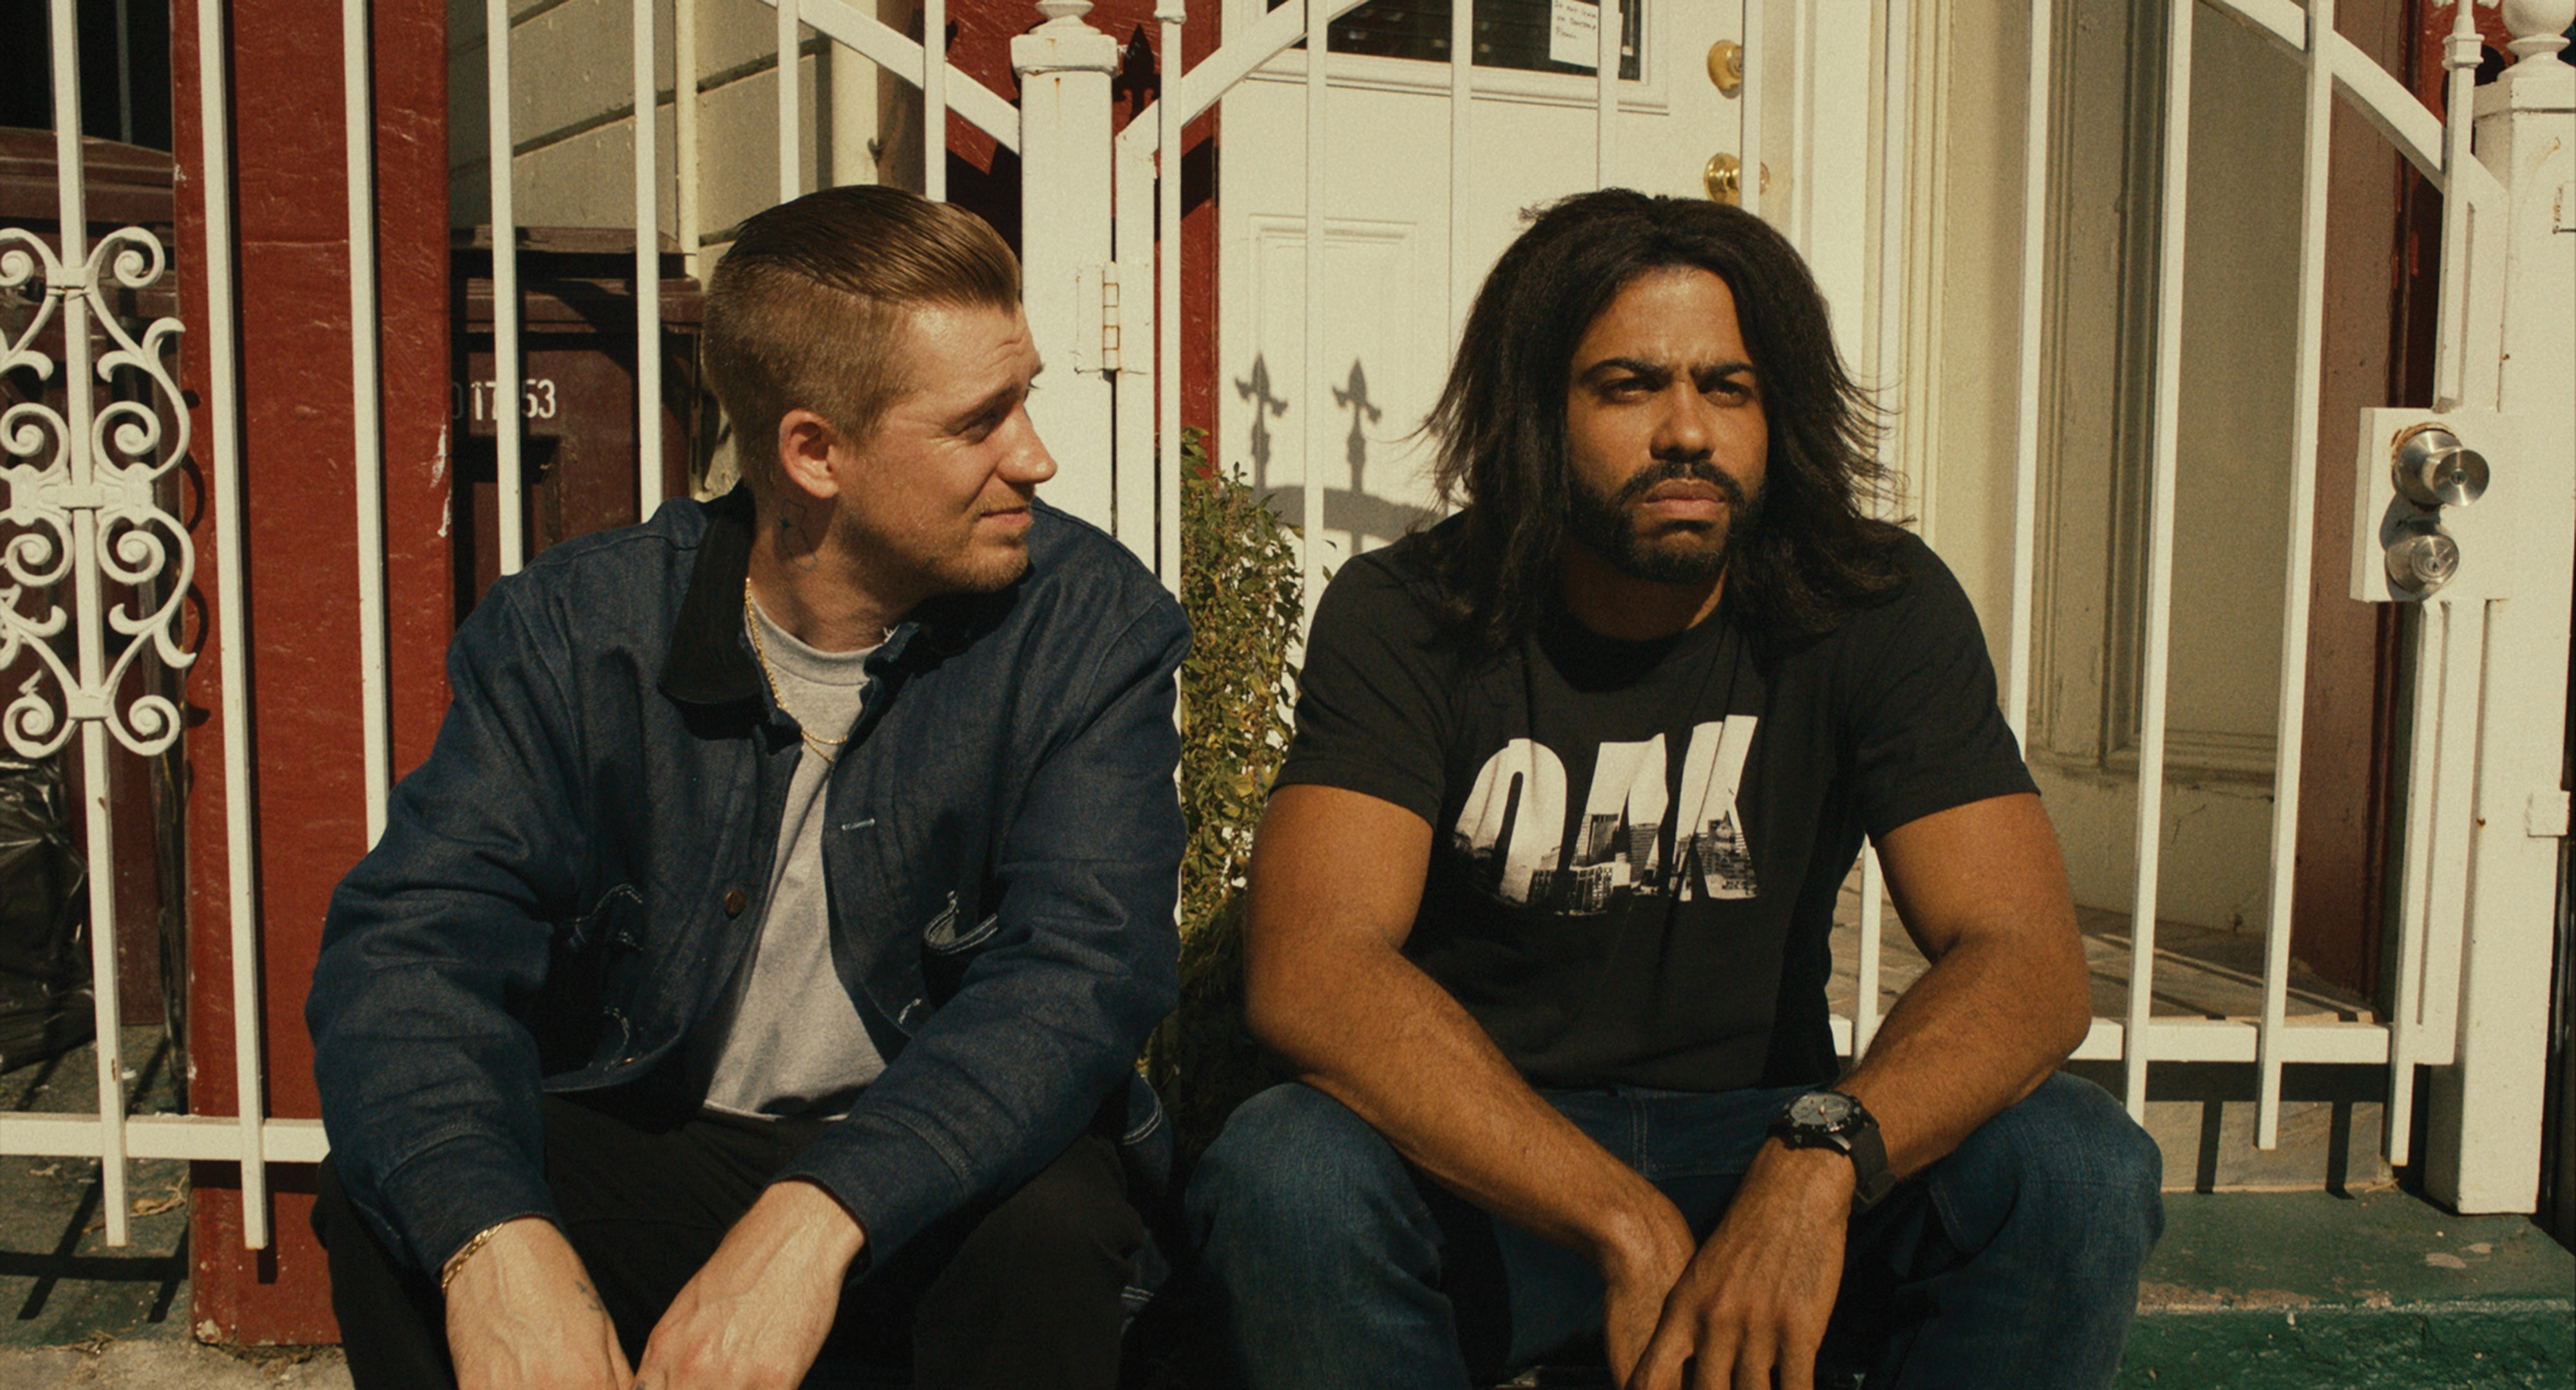 Rafael Casal and Daveed Diggs in the film.